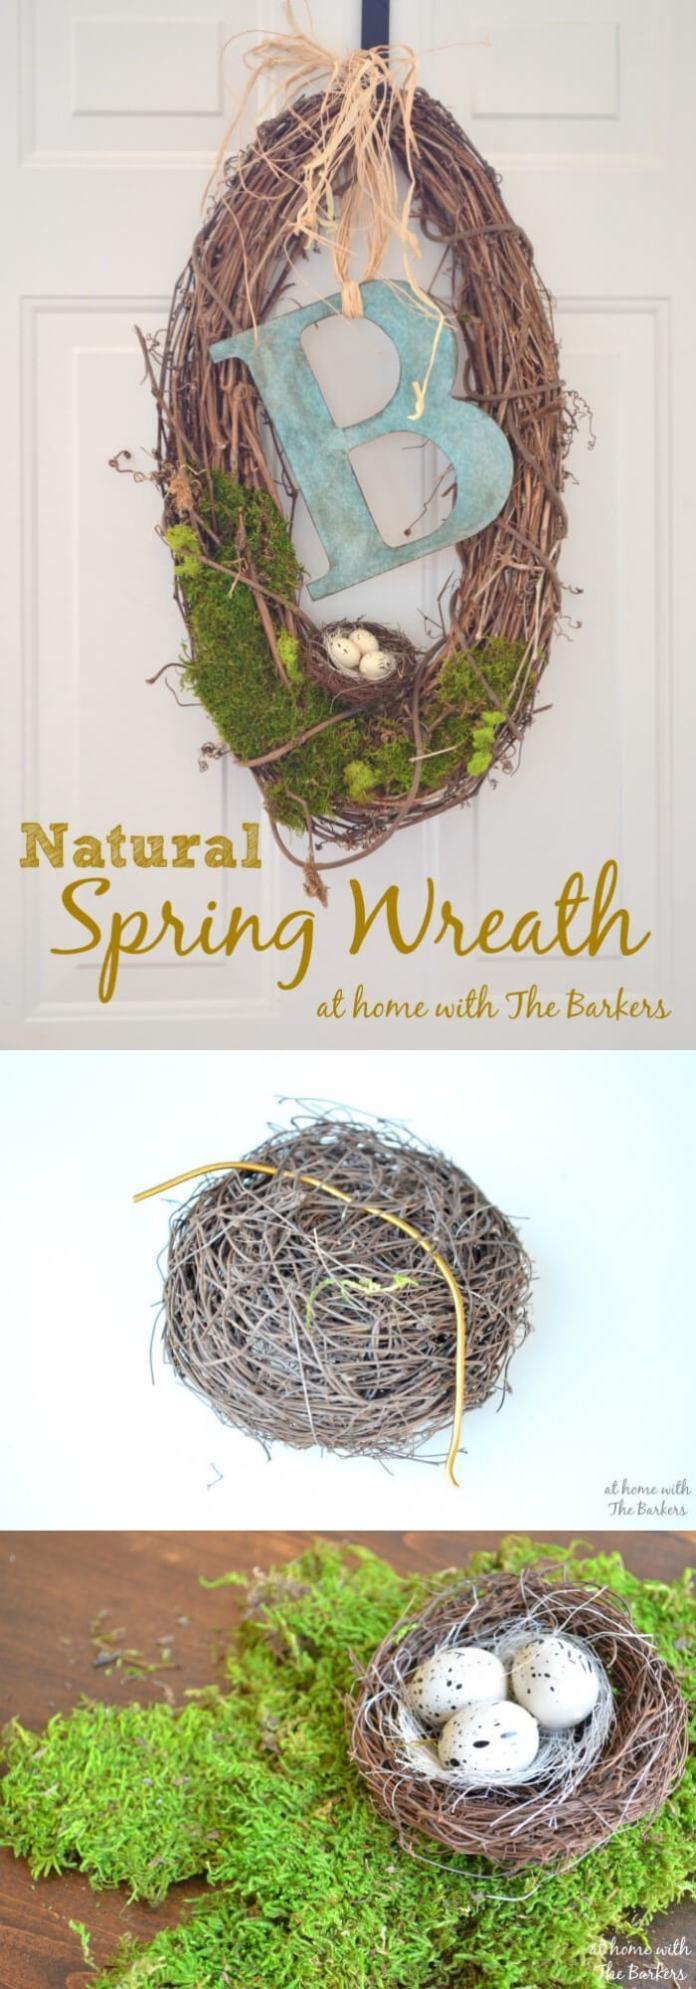 Easy and Simple DIY Spring Wreath Ideas | Natural Spring Wreath for front door